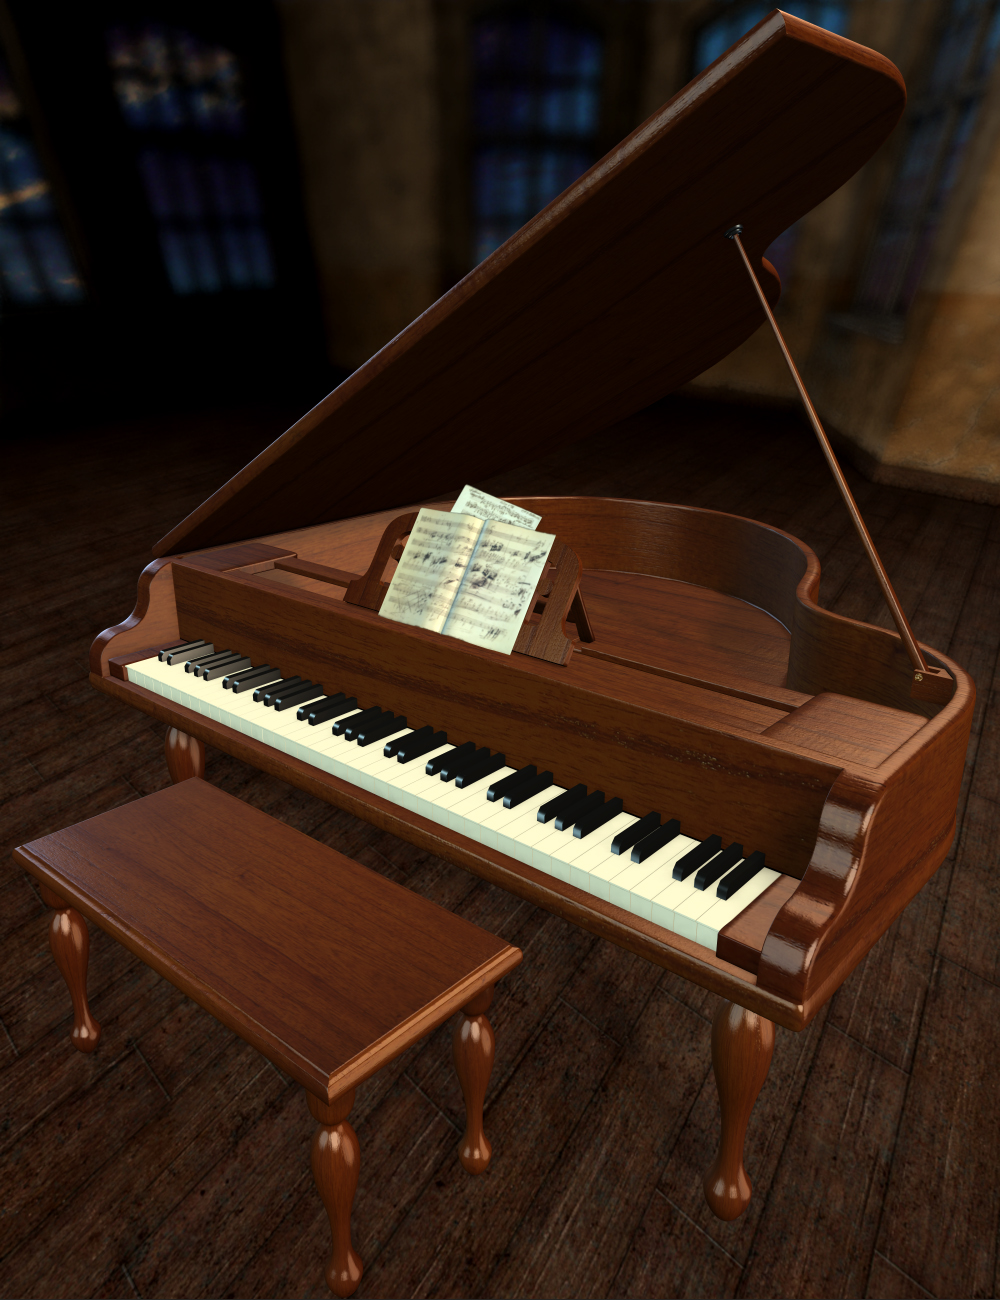 Toy Piano by: Thorne, 3D Models by Daz 3D